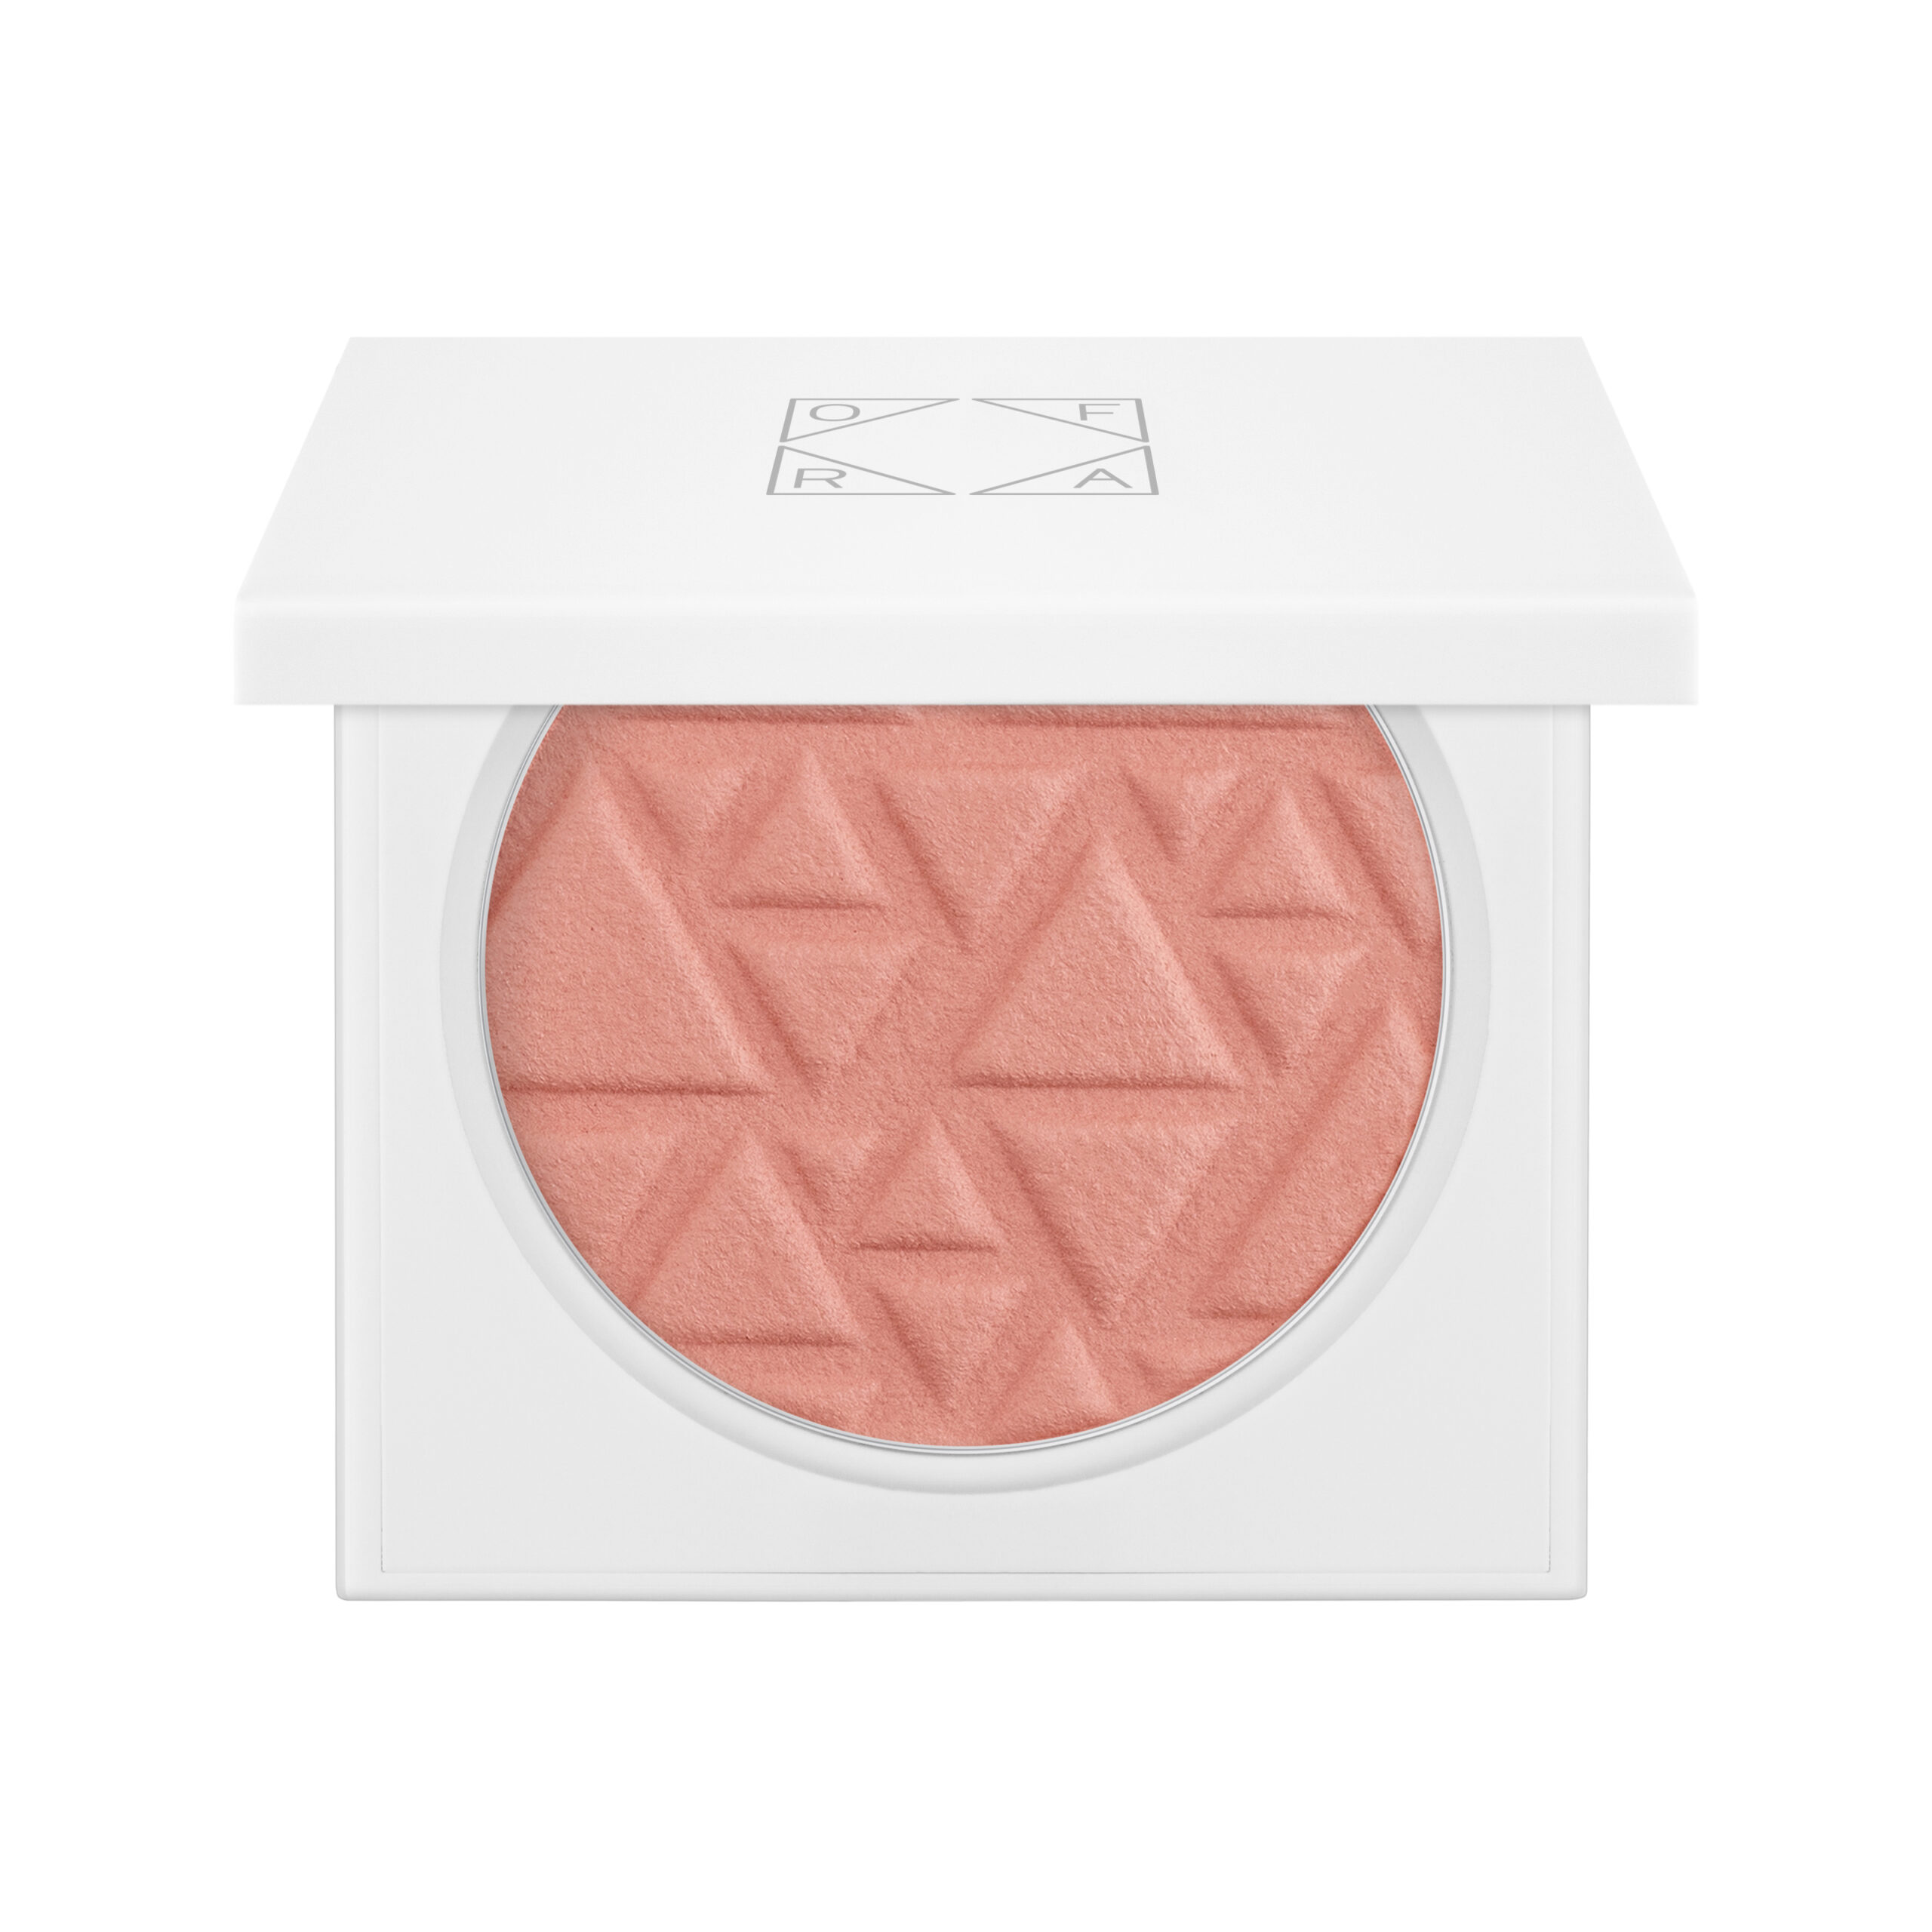 OFRA Cosmetics Pressed Powder Blush Bellini